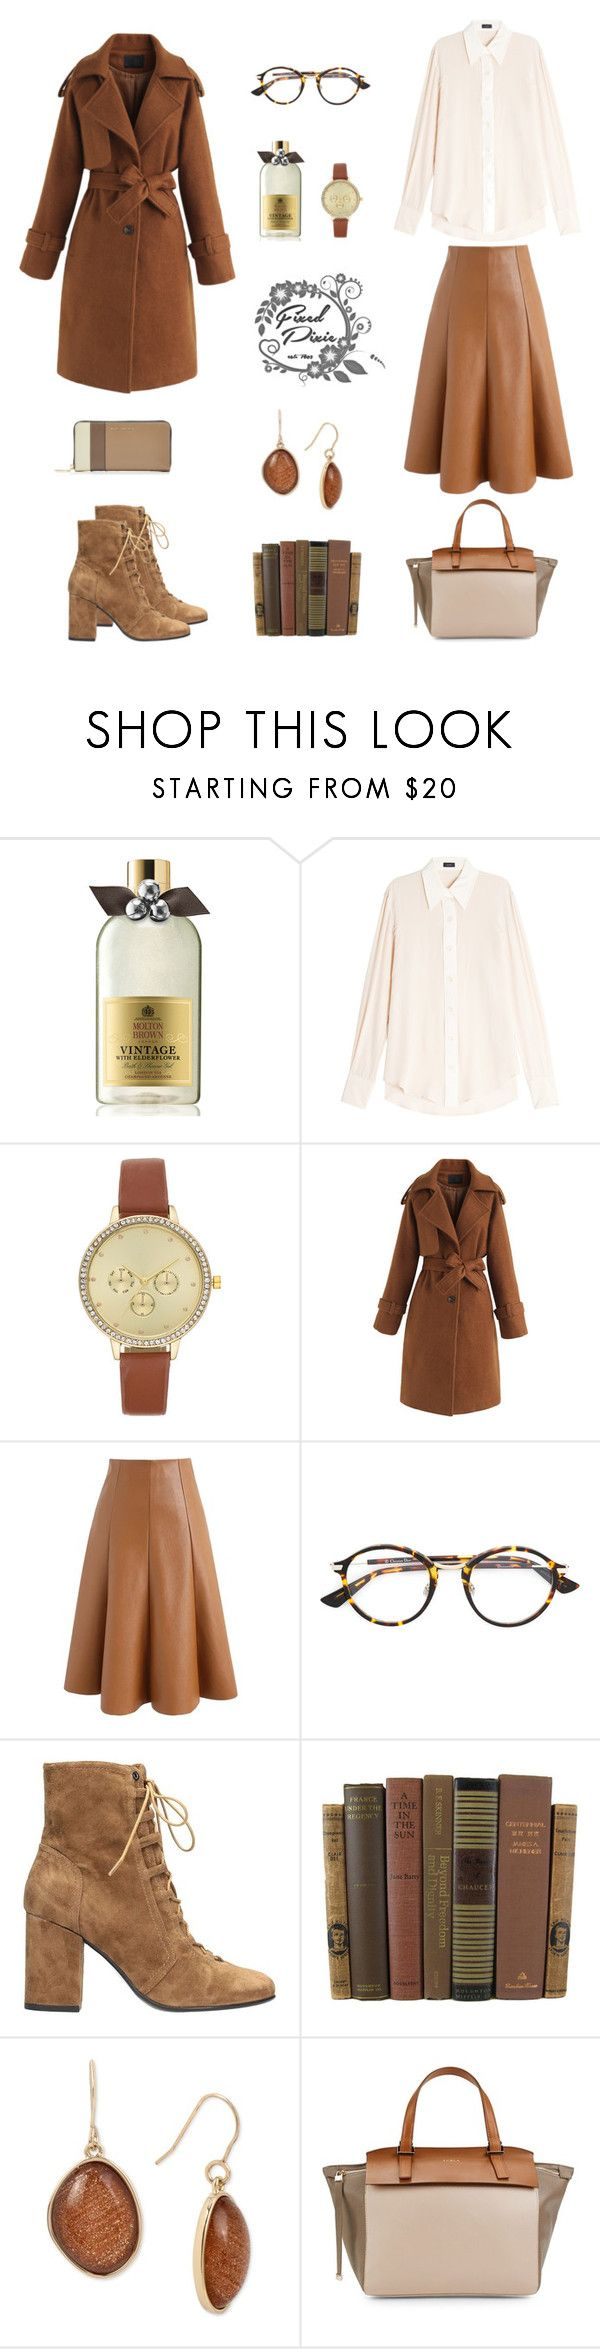 """""""caramel world"""" by fixedpixie ❤ liked on Polyvore featuring Molton Brown, Joseph, Chicwish, Christian Dior, Lola Cruz, Kenneth Cole, Furla, Marc Jacobs, skirt and brown"""